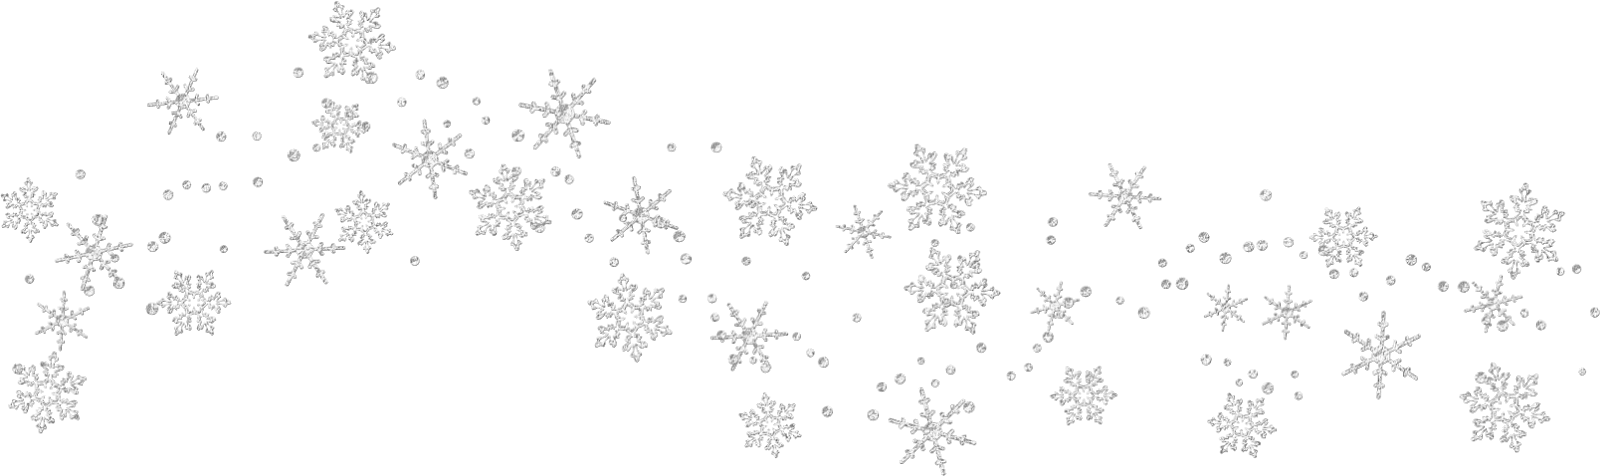 Pointed snowflake clipart transparent background graphic stock The WI Newsletter: January 2016 graphic stock